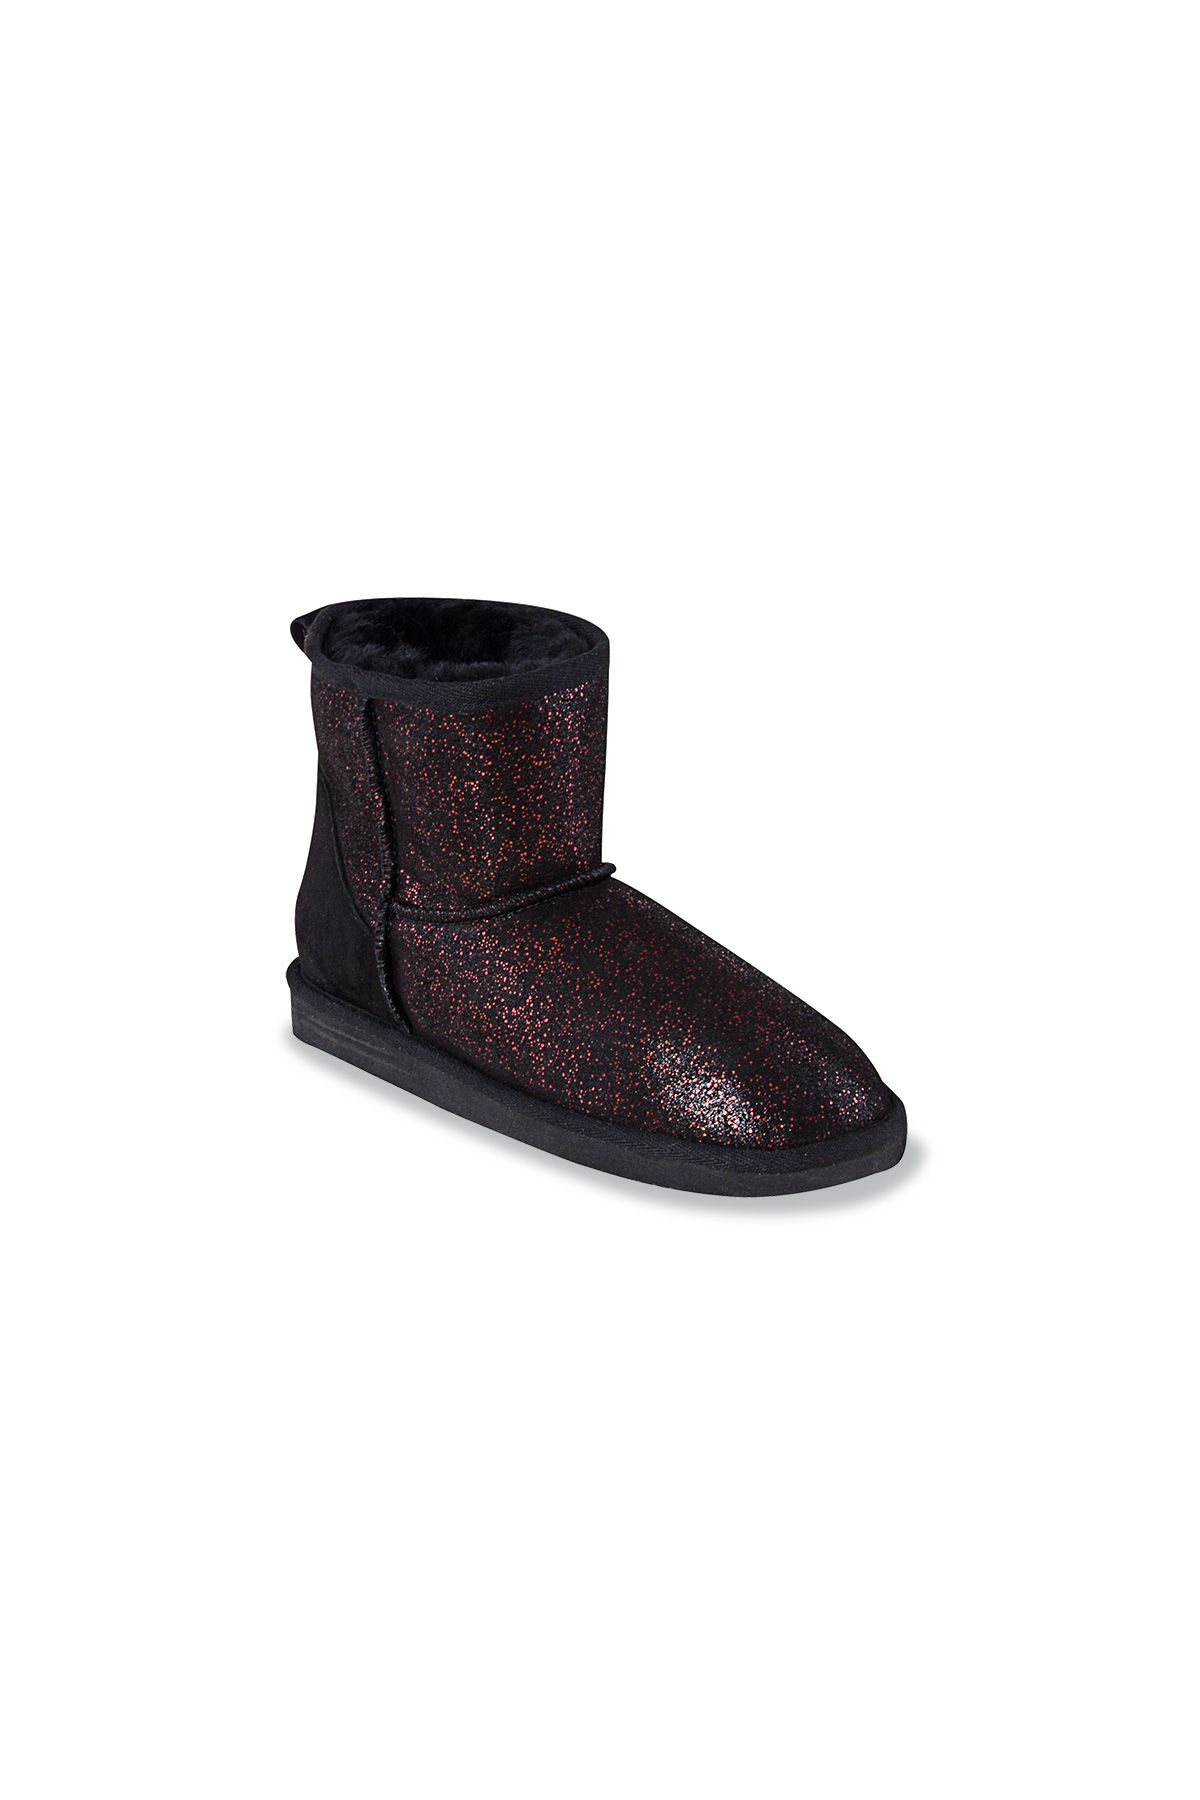 Pegia Short Women Boots From Genuine Sheepskin Fur With Galaxy Sequins 191029 Claret red